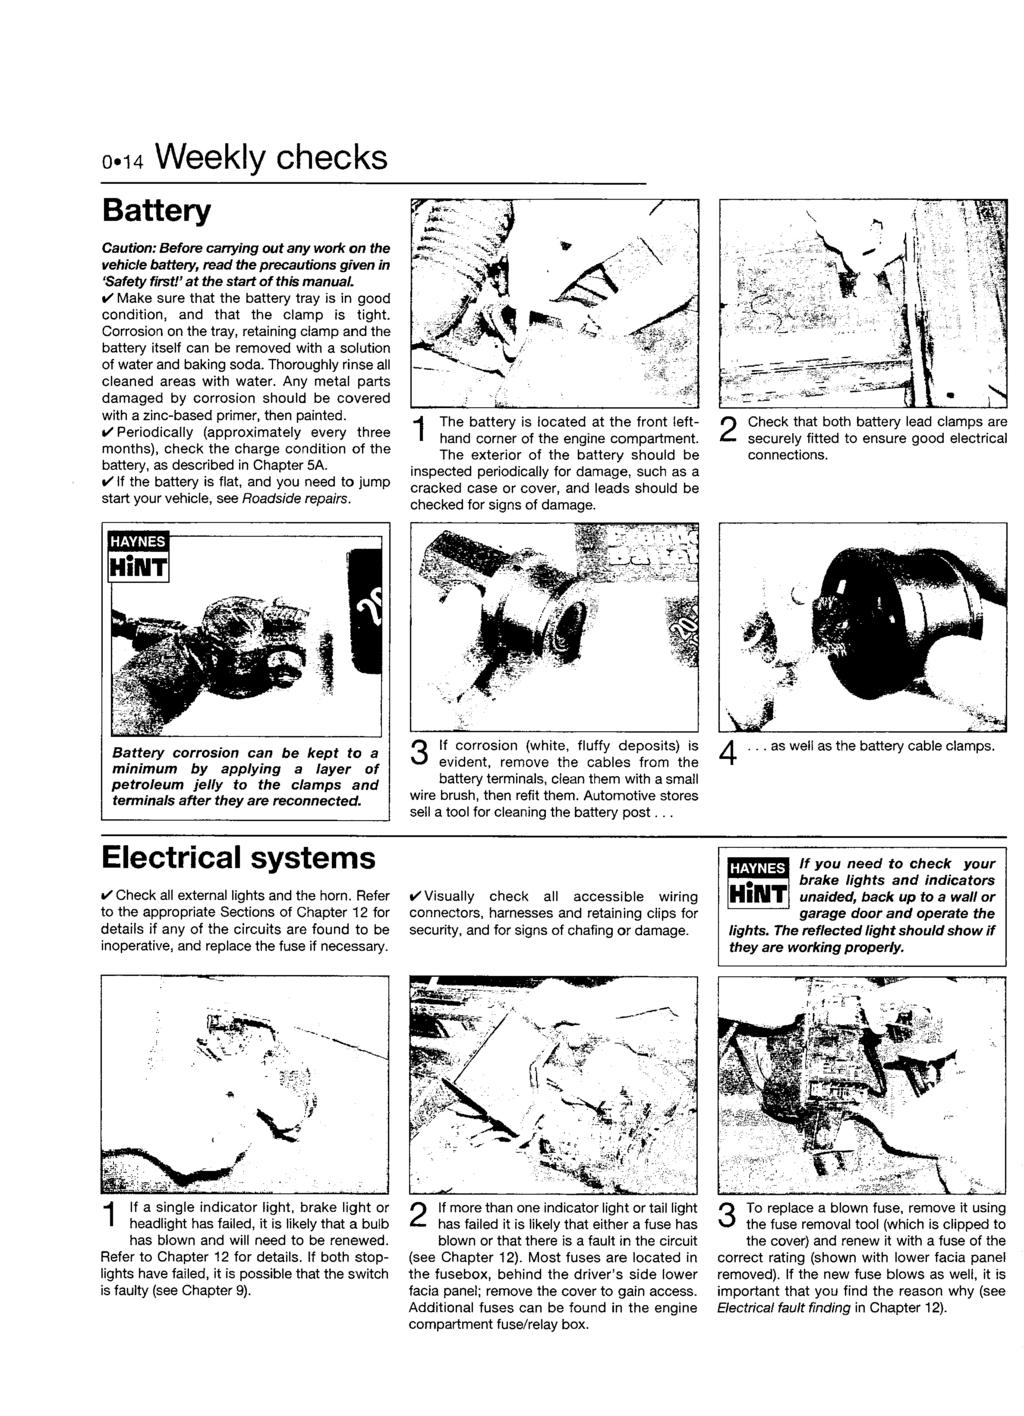 Mmm Haynes Service And Repair Manual 1996 To Mar 2004 N Wiringpi O Error 127 Oi4 Weekly Checks Battery Caution Before Carrying Out Any Work On The Vehicle